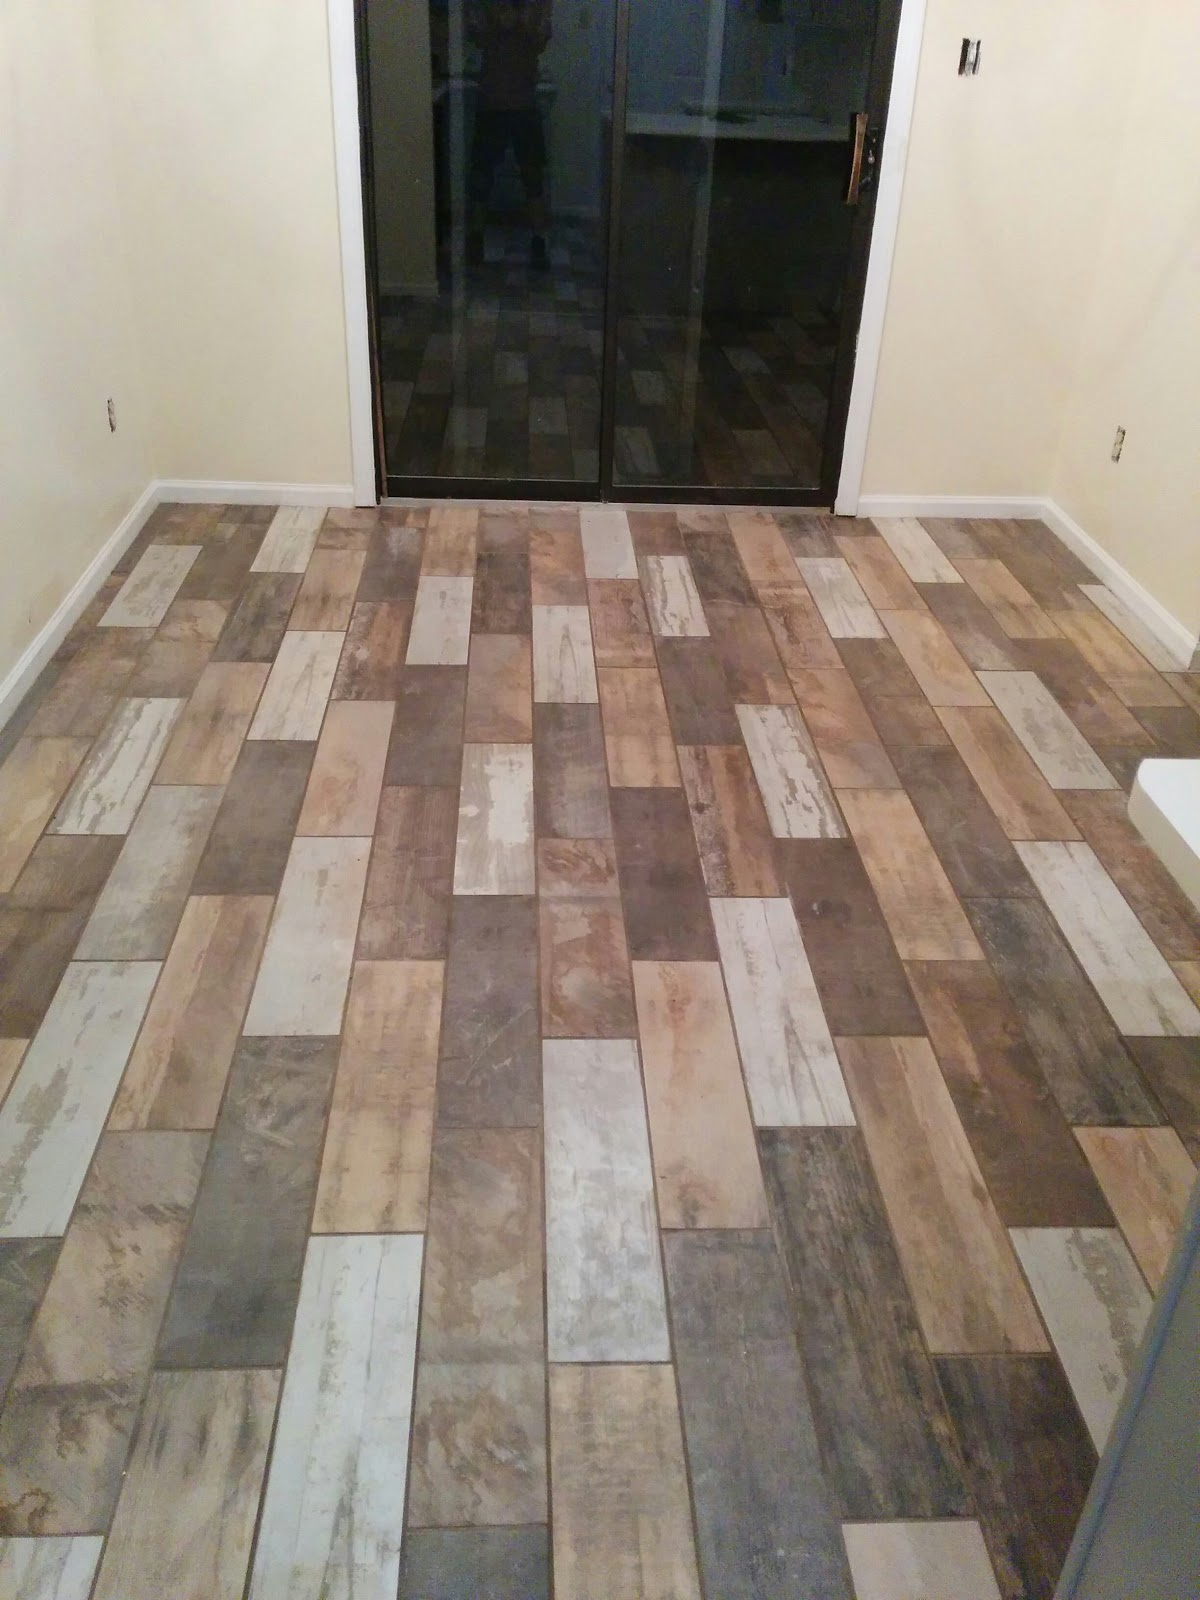 Tile installation indianapolis in morgans floor to wall wed love to do a tile installation for you too get in touch with us and wed be happy to discuss installing a beautiful tile floor for you too dailygadgetfo Image collections